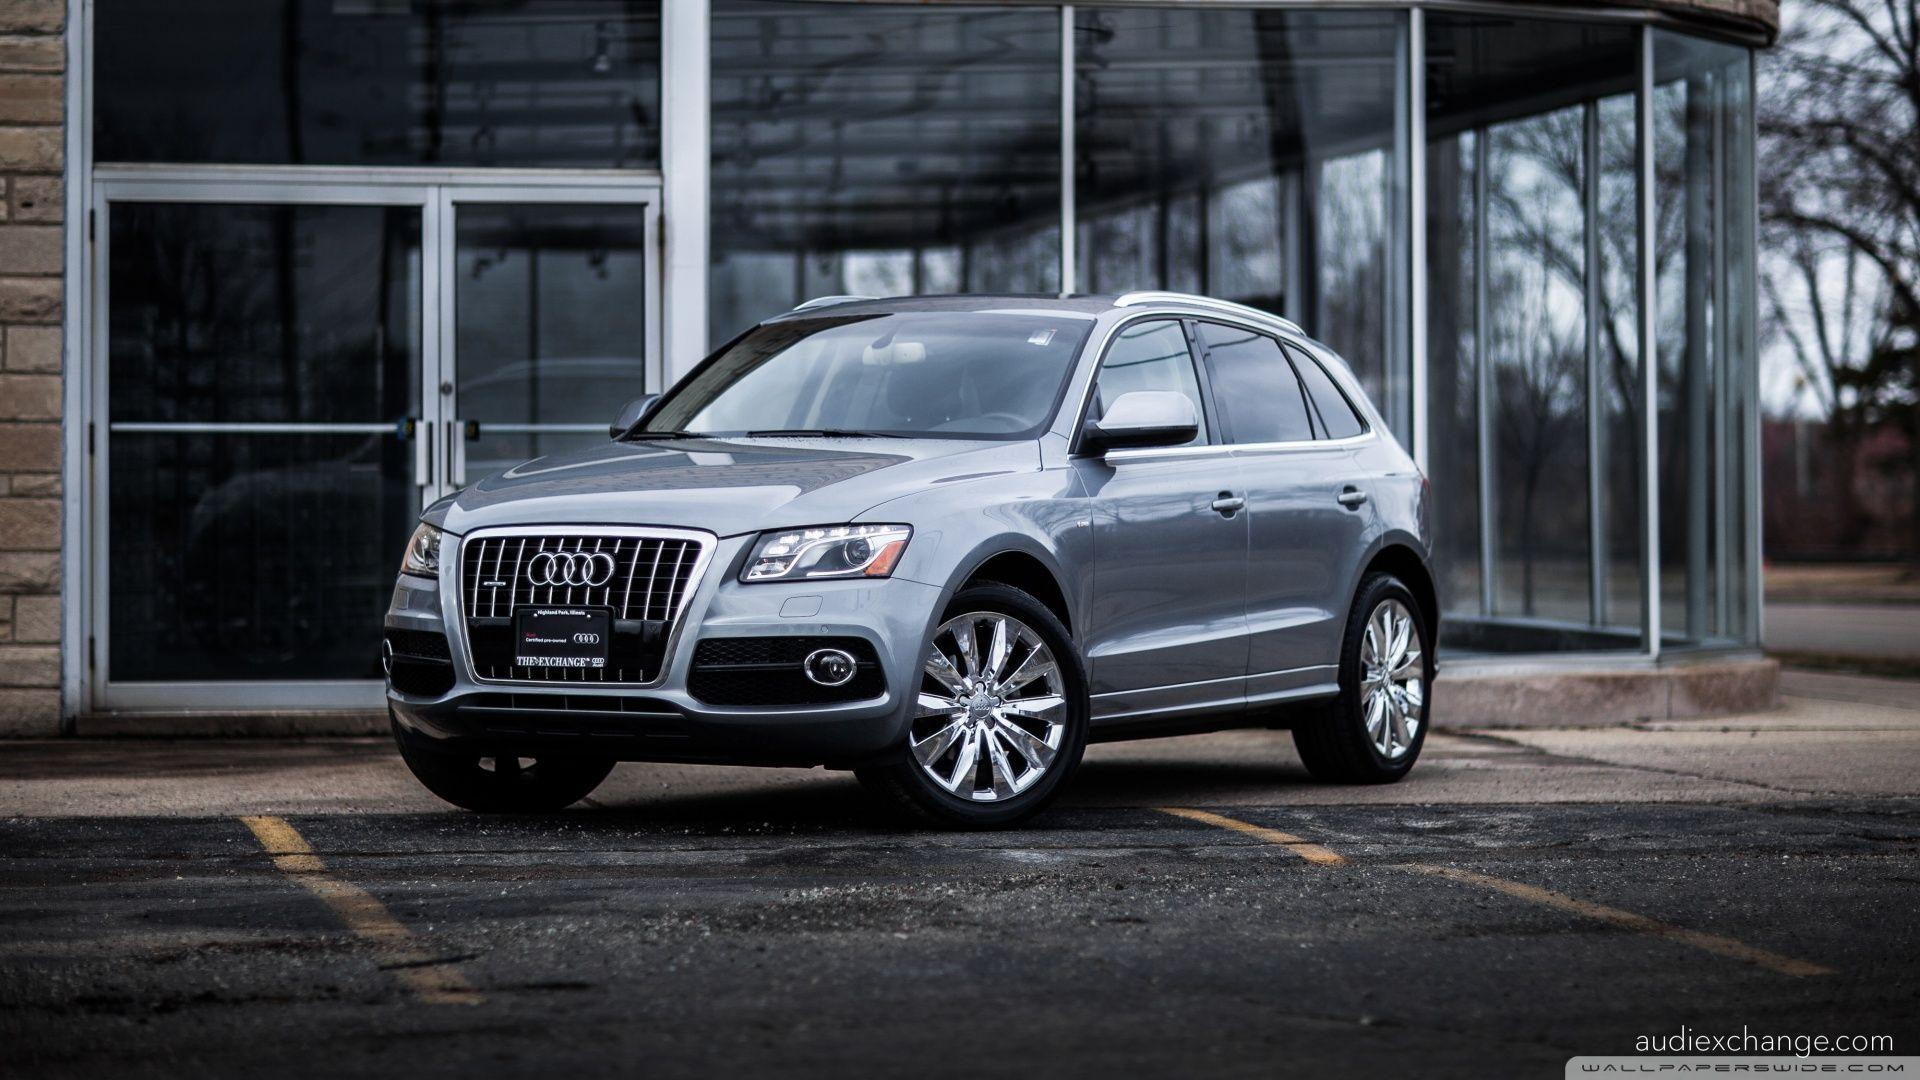 2011 Audi Q5 Prestige with Chrome Wheels